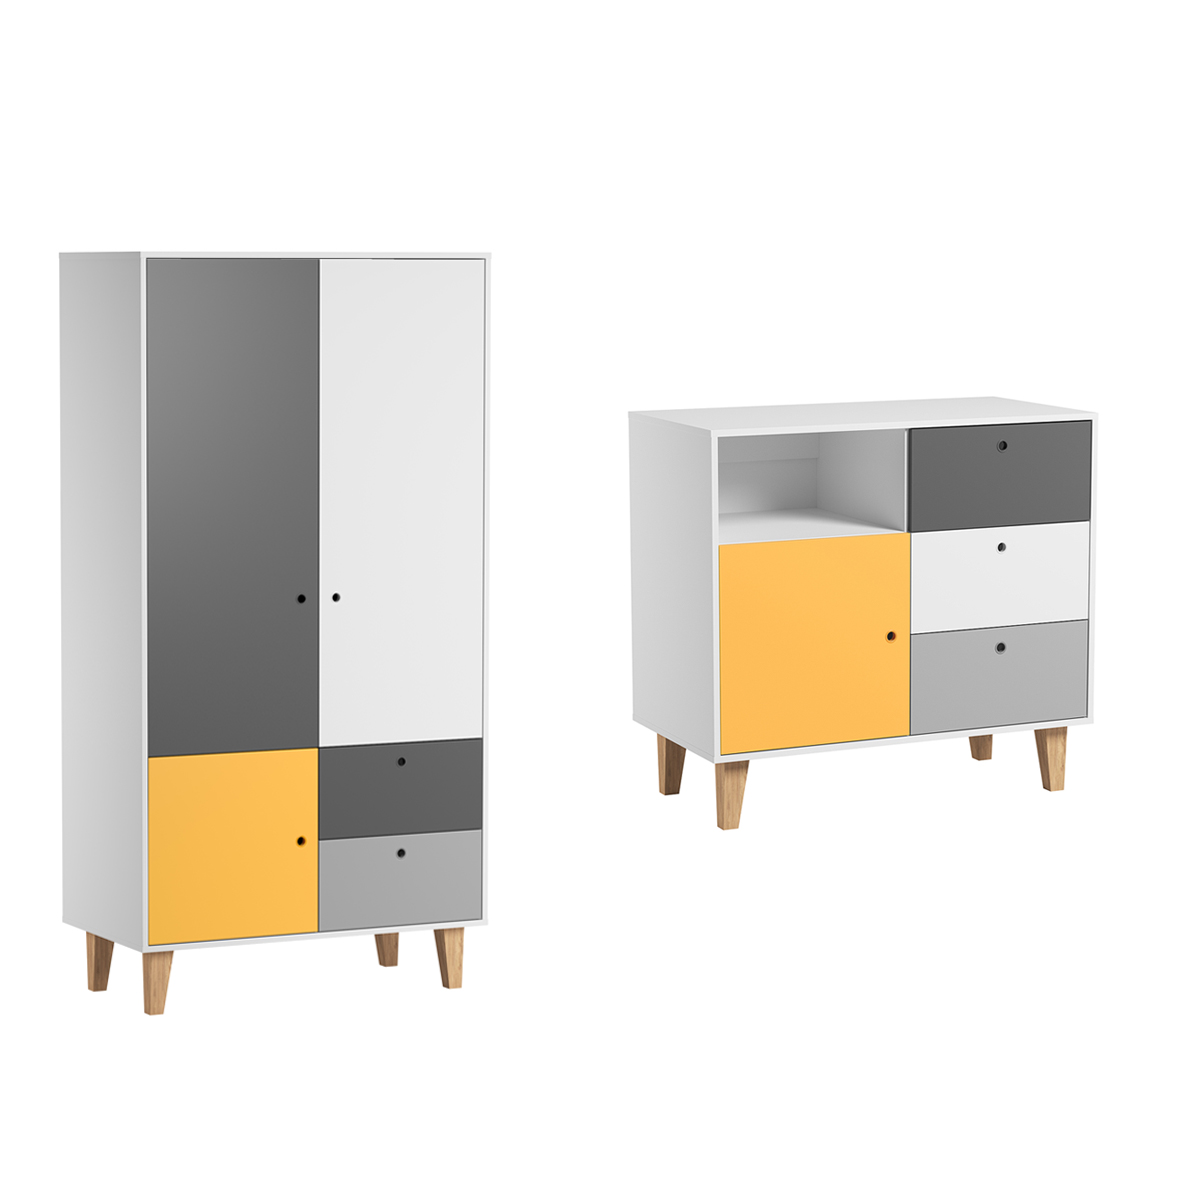 vox_concept_pack_armoire_commode_jaune